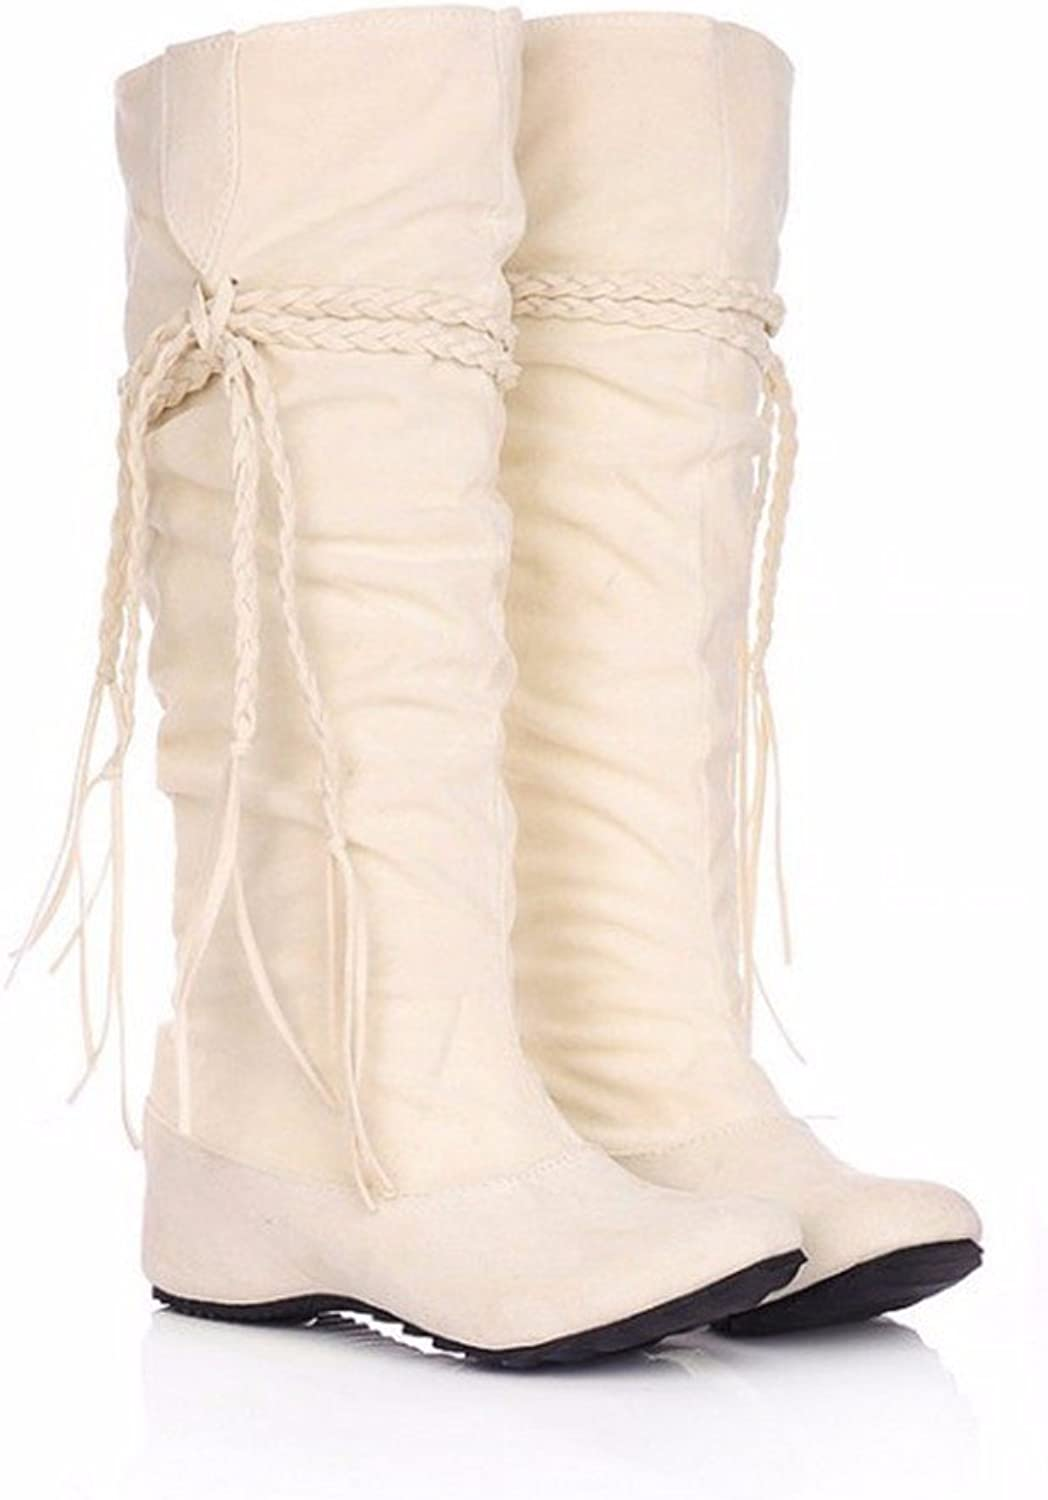 The Increase in Size of Winter Scrub Fringed Boots high Boots Students